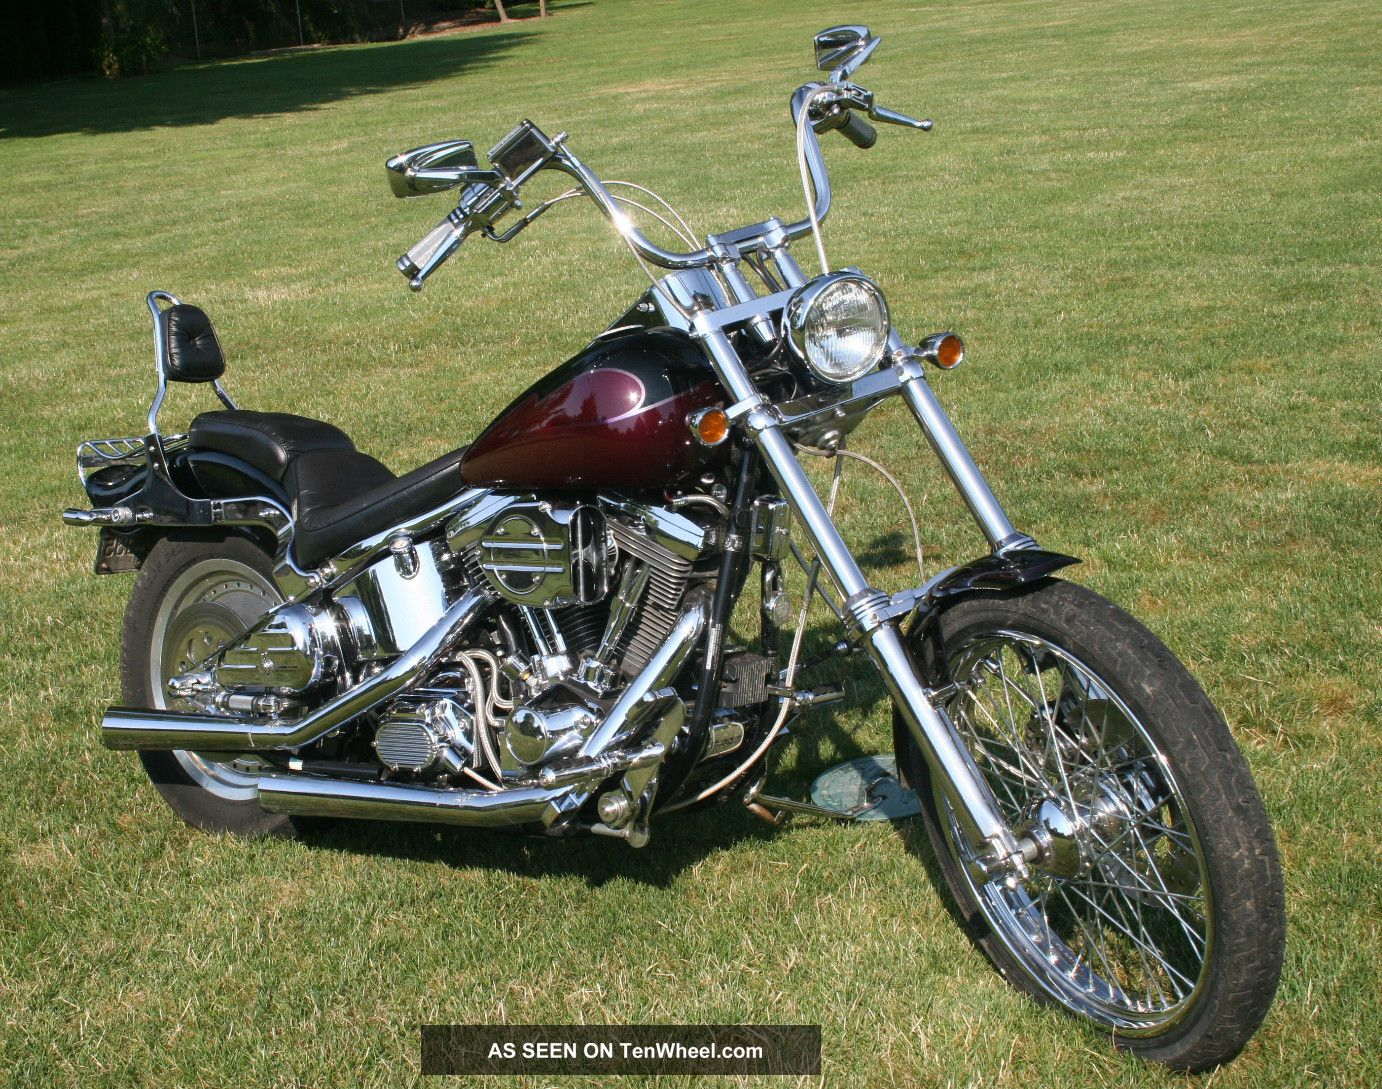 1991 Harley Davidson Softail Custom Fxstc Chopped Ghost Graphics Long Low Wide